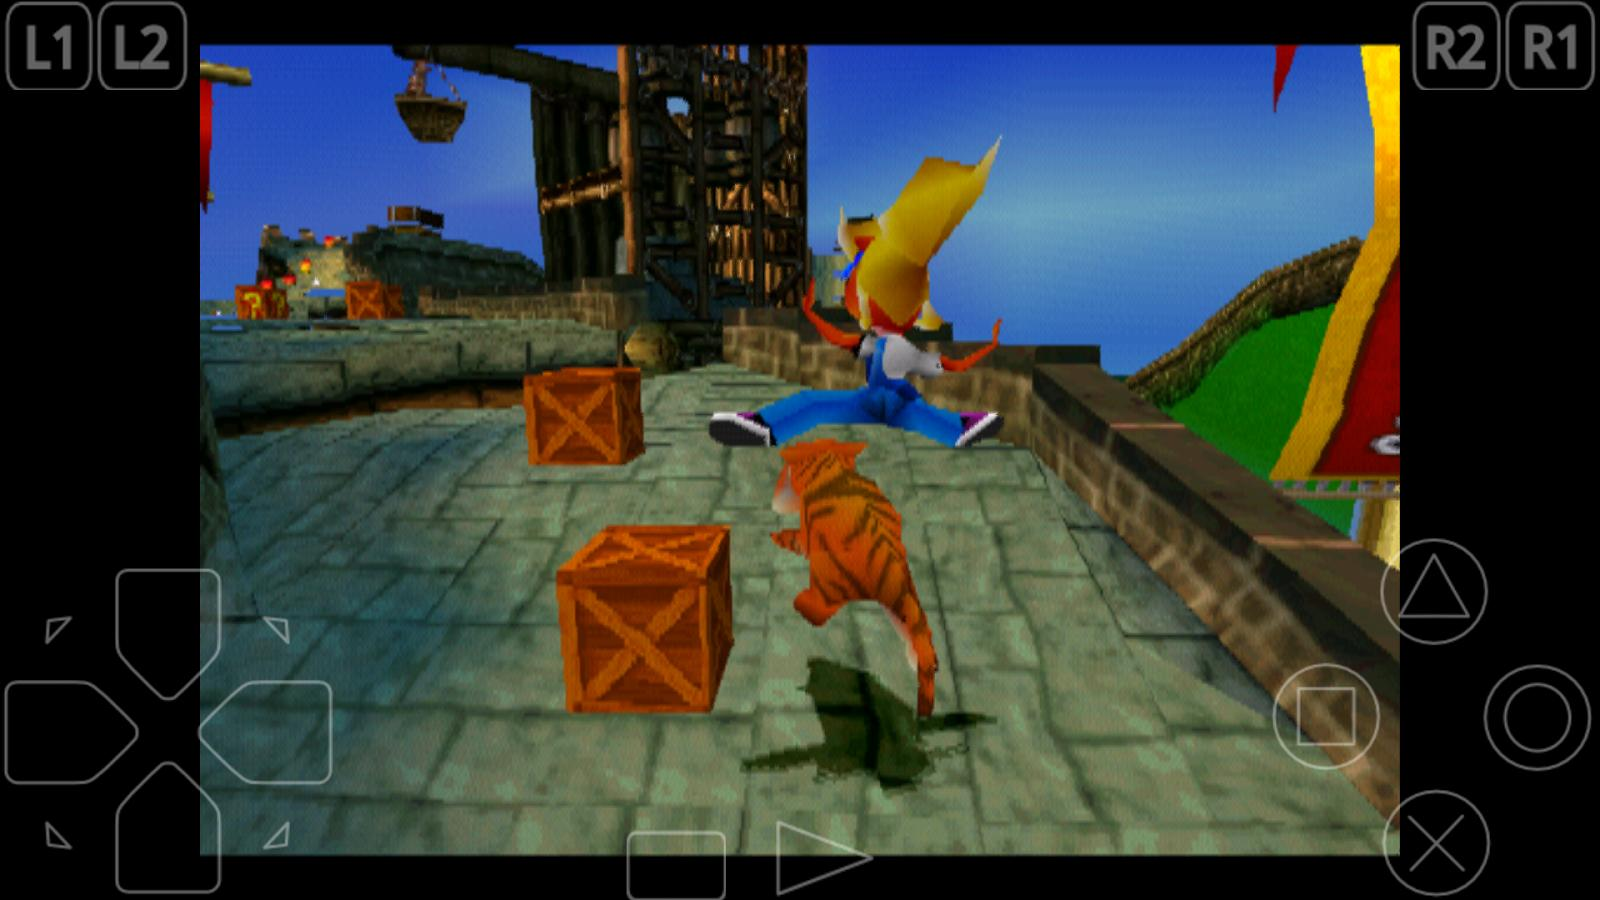 PS2 For Emulator for Android - APK Download